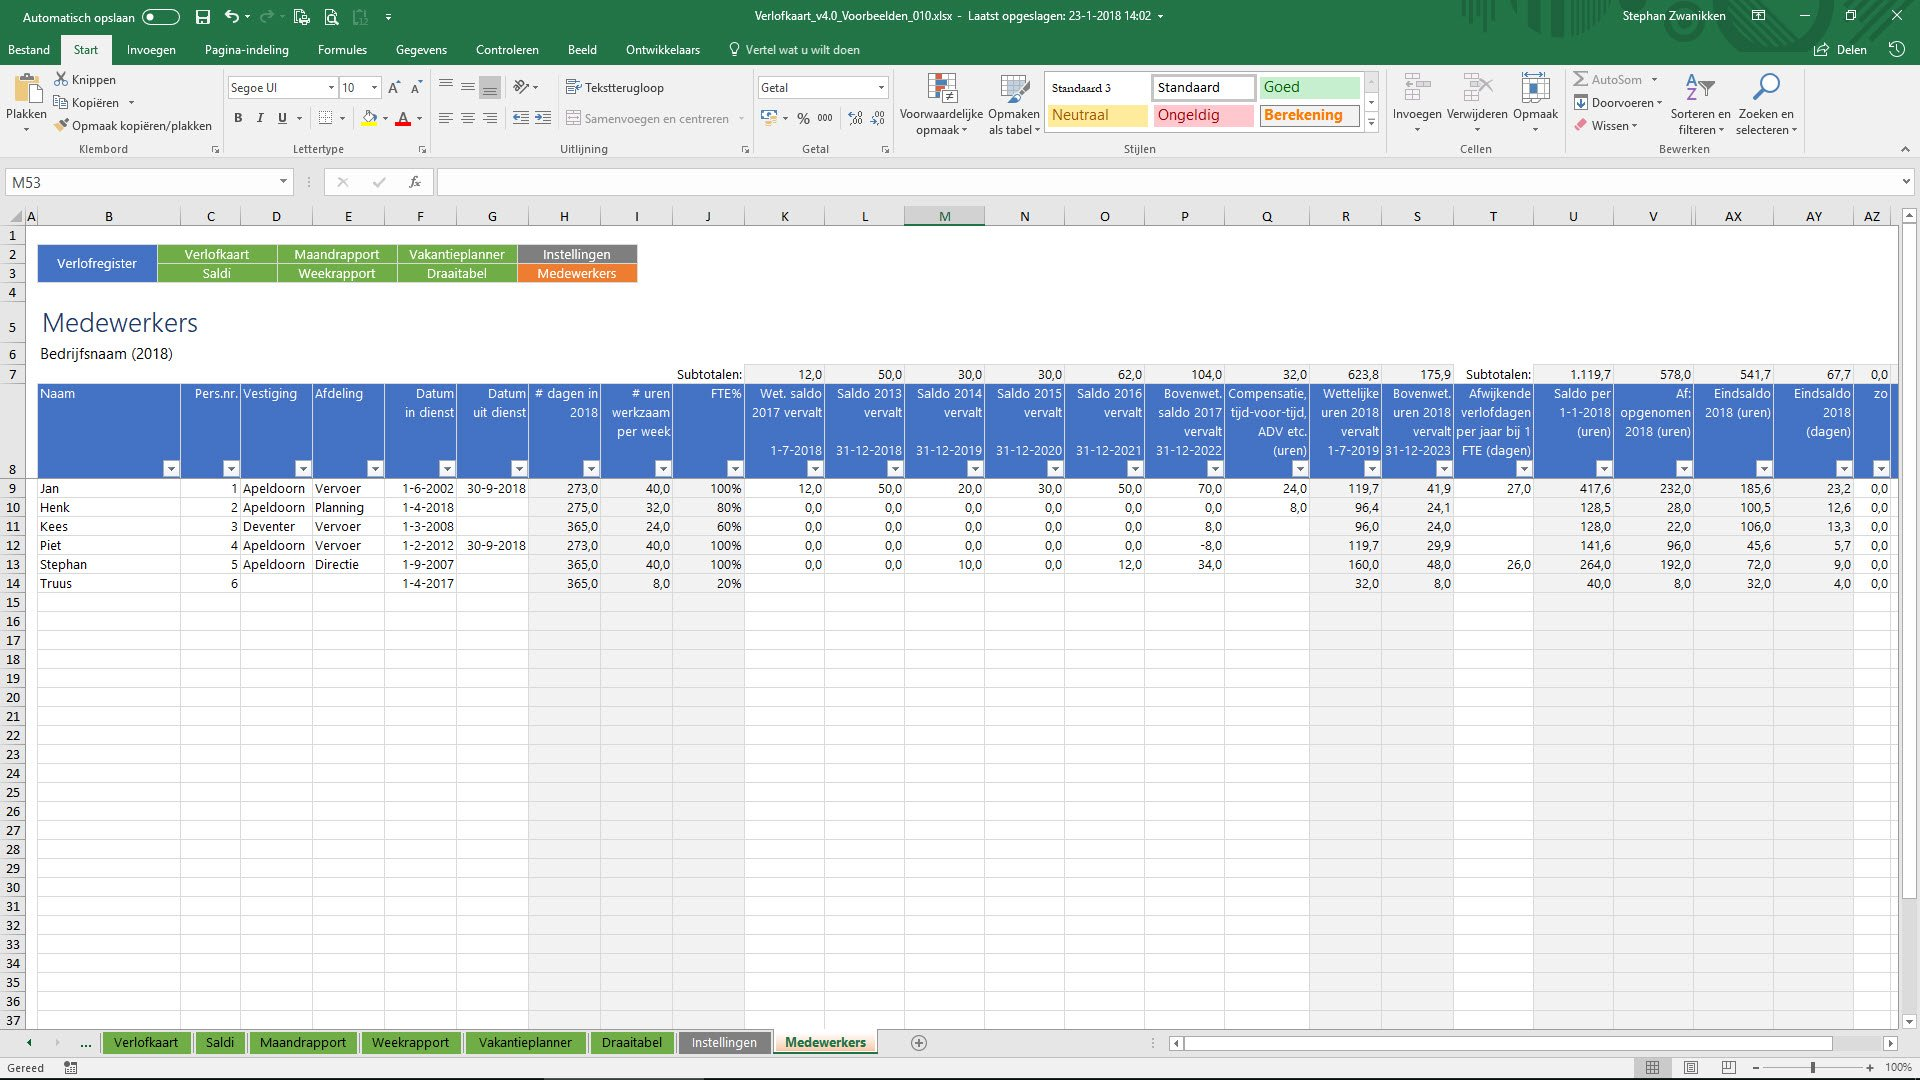 EXCEL 2019 GRATIS DOWNLOAD